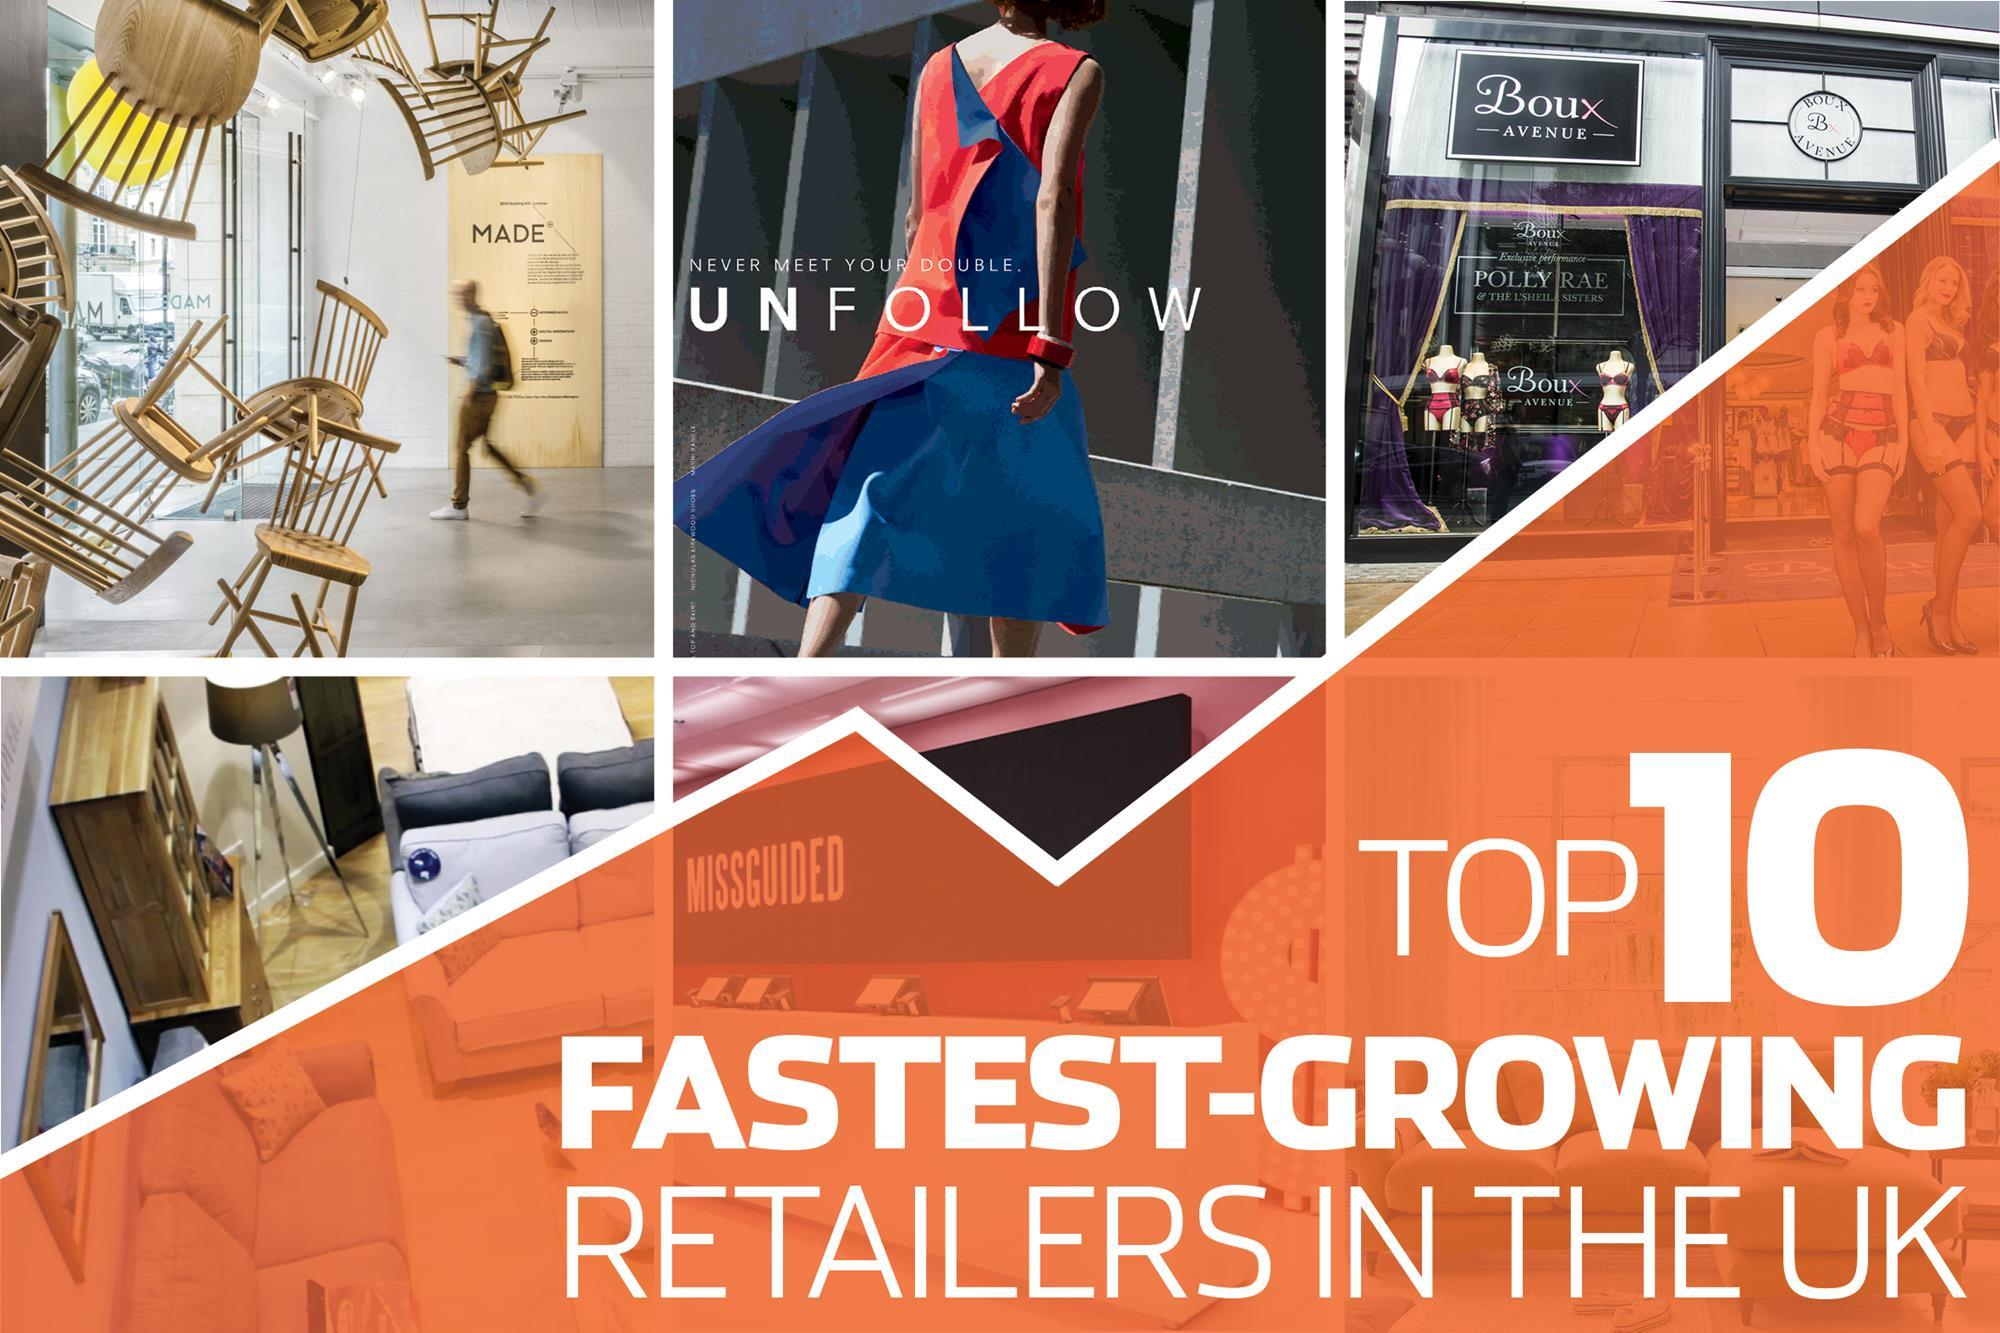 okey is a fast growing retail The top 10 fastest-growing retailers in the uk by philip wiggenraad , george macdonald 2017-01-17t06:00:00 growth is the holy grail for retailers, particularly in a shifting trading landscape in which technology is transforming shopping habits.